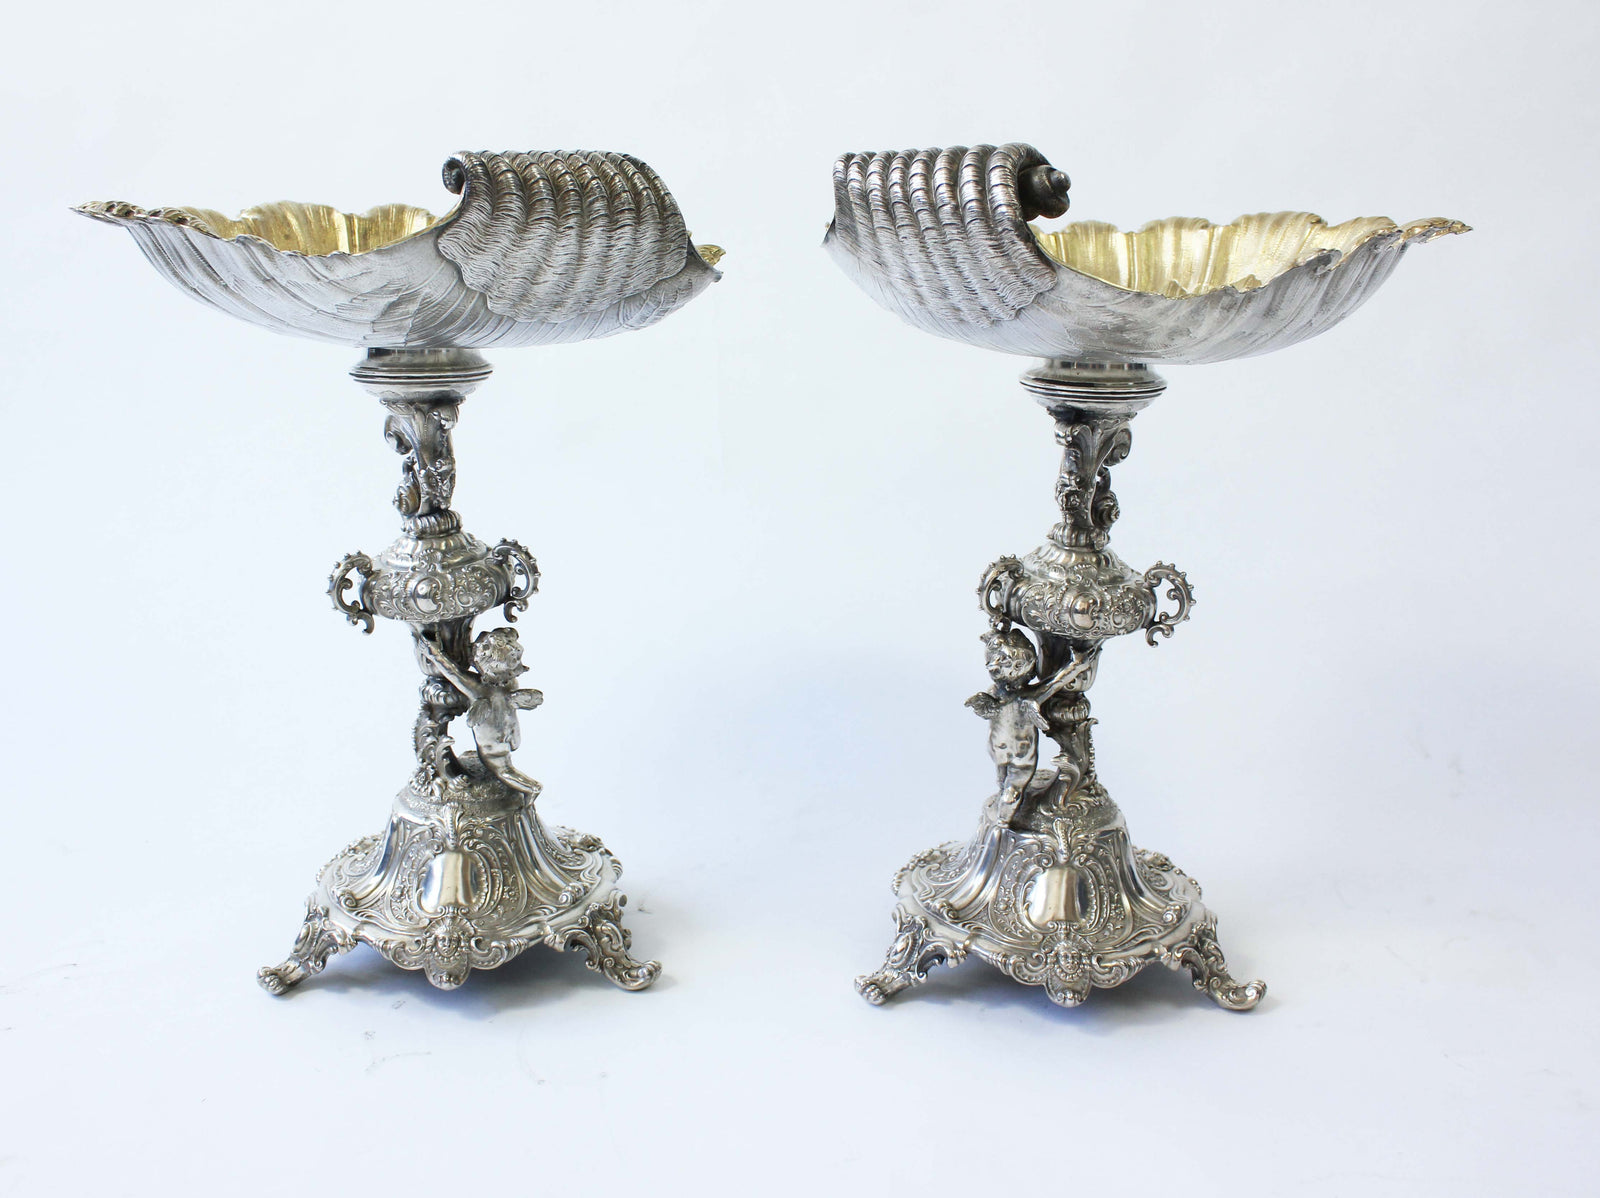 Silver and silver gilt Comports by Posen